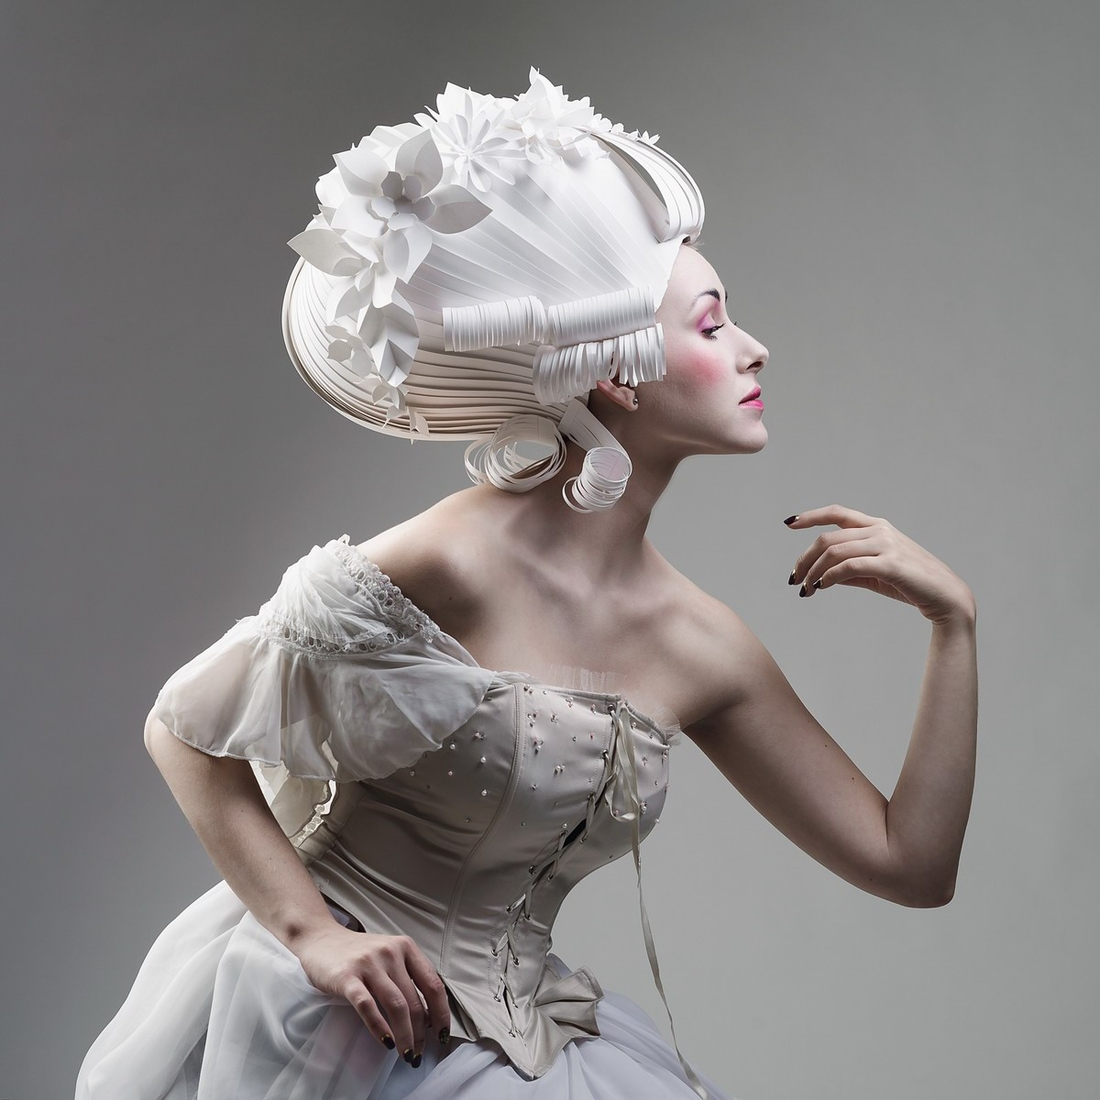 06-Asya-Kozina-Ася Козина-Baroque-Wigs-made-out-of-Hand-Cut-Paper-www-designstack-co